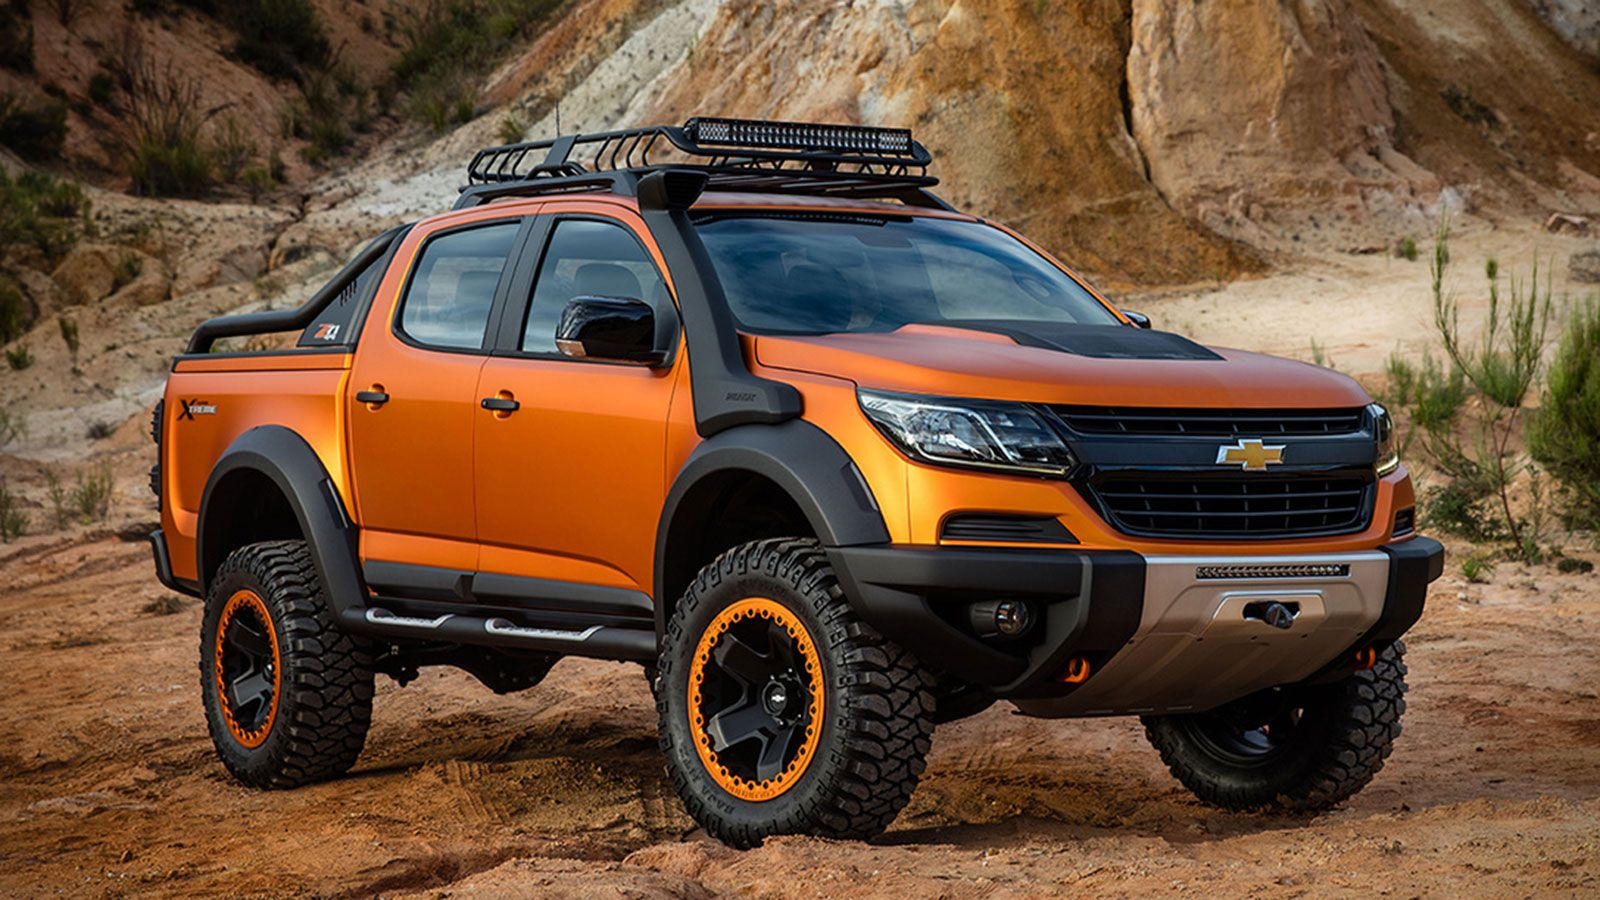 Chevrolet colorado xtreme famous for its muscle cars the american car manufacturer